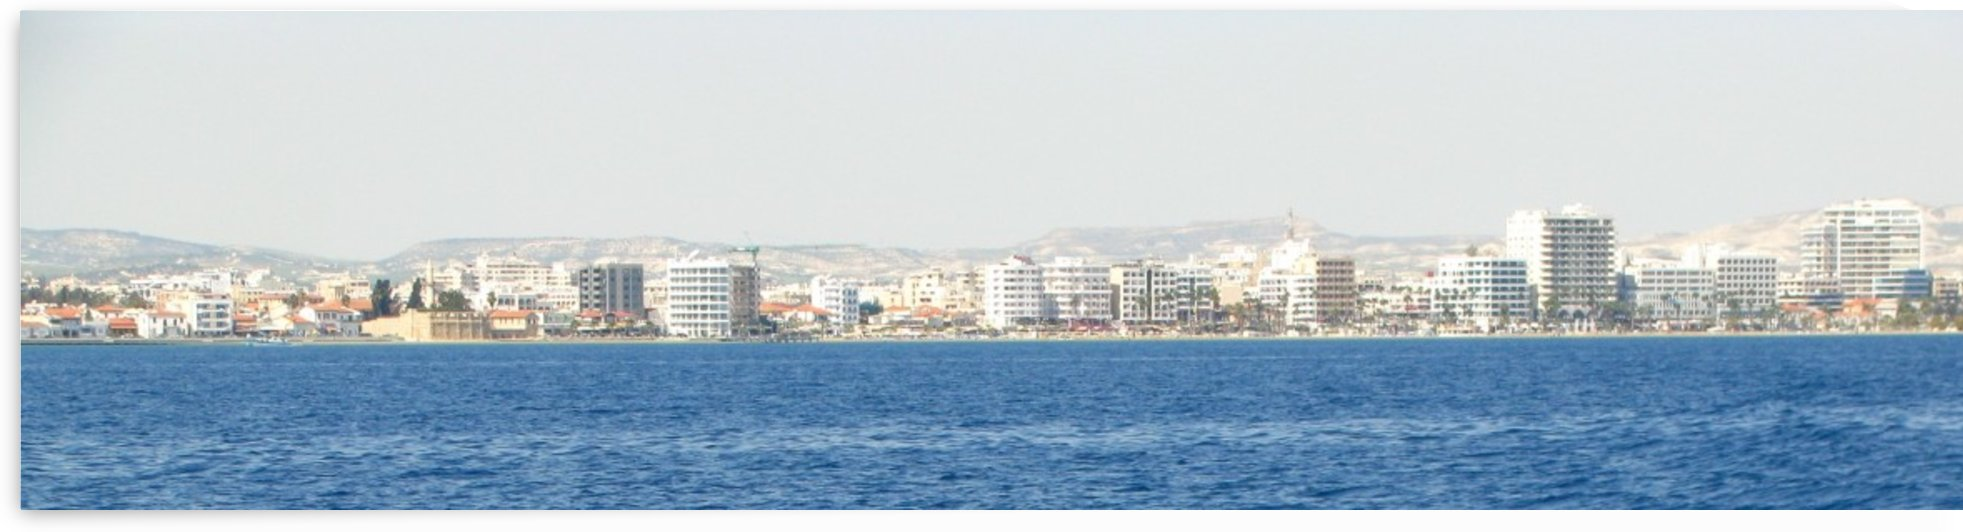 Cypriot shore of Larnaca with mountains in the back and modern buildings by Vlad Radulian